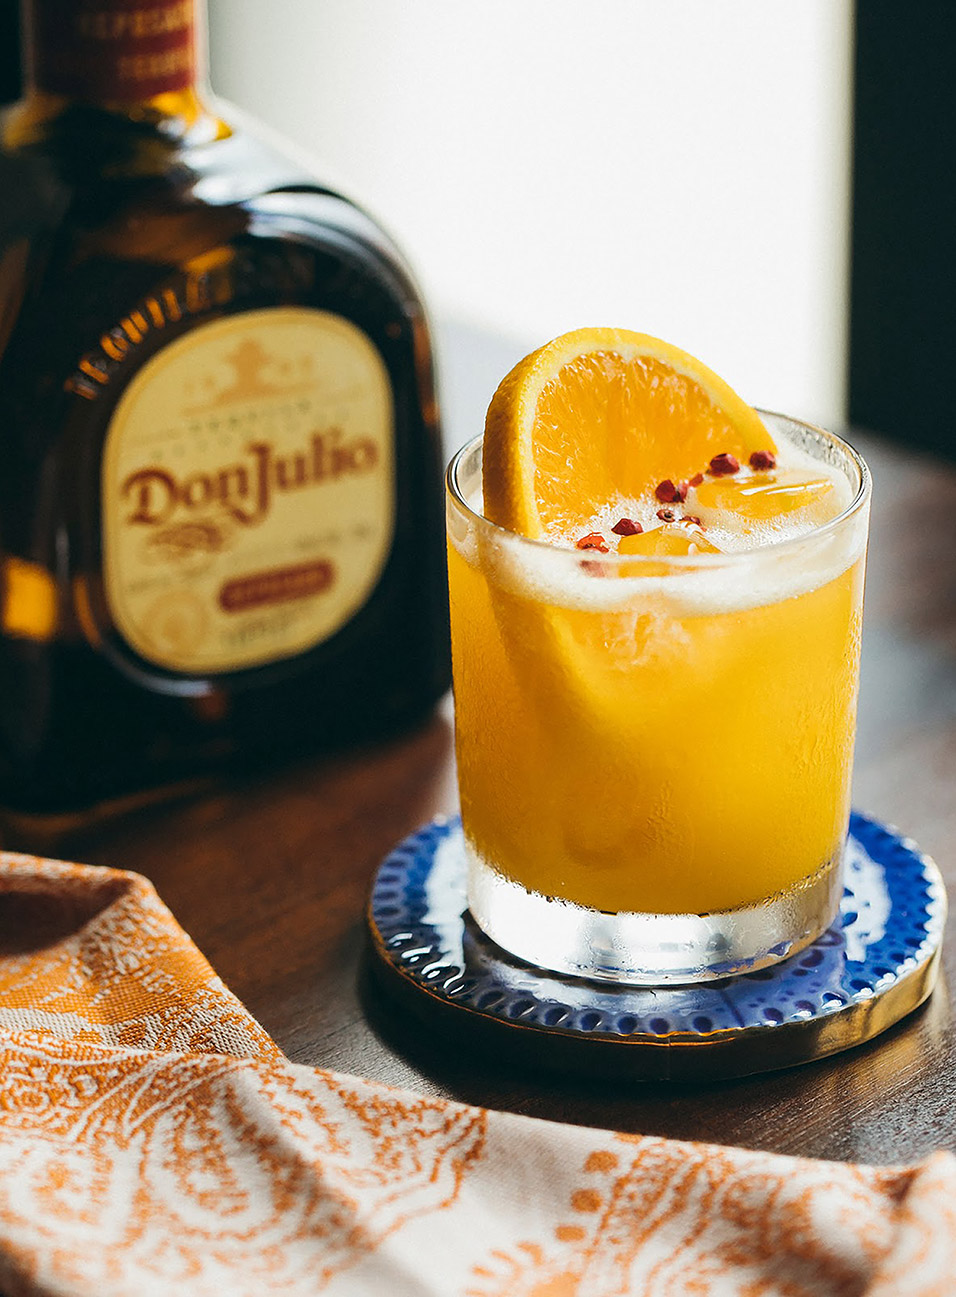 Puesta de Sol Cocktail made with Don Julio Reposado Tequila